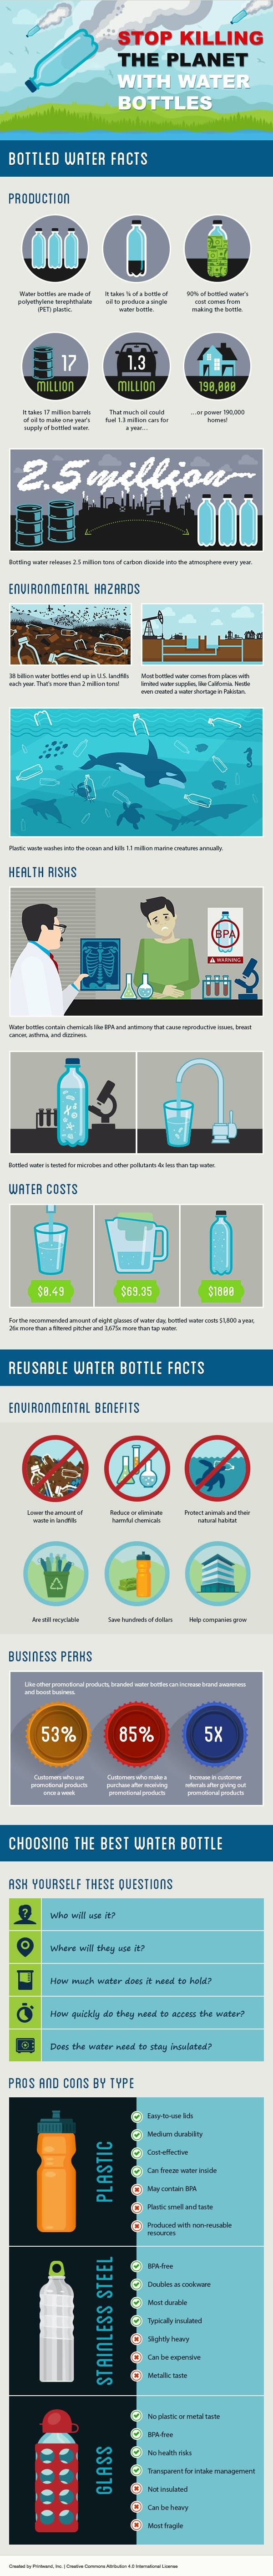 Stop Killing the Planet with Water Bottles